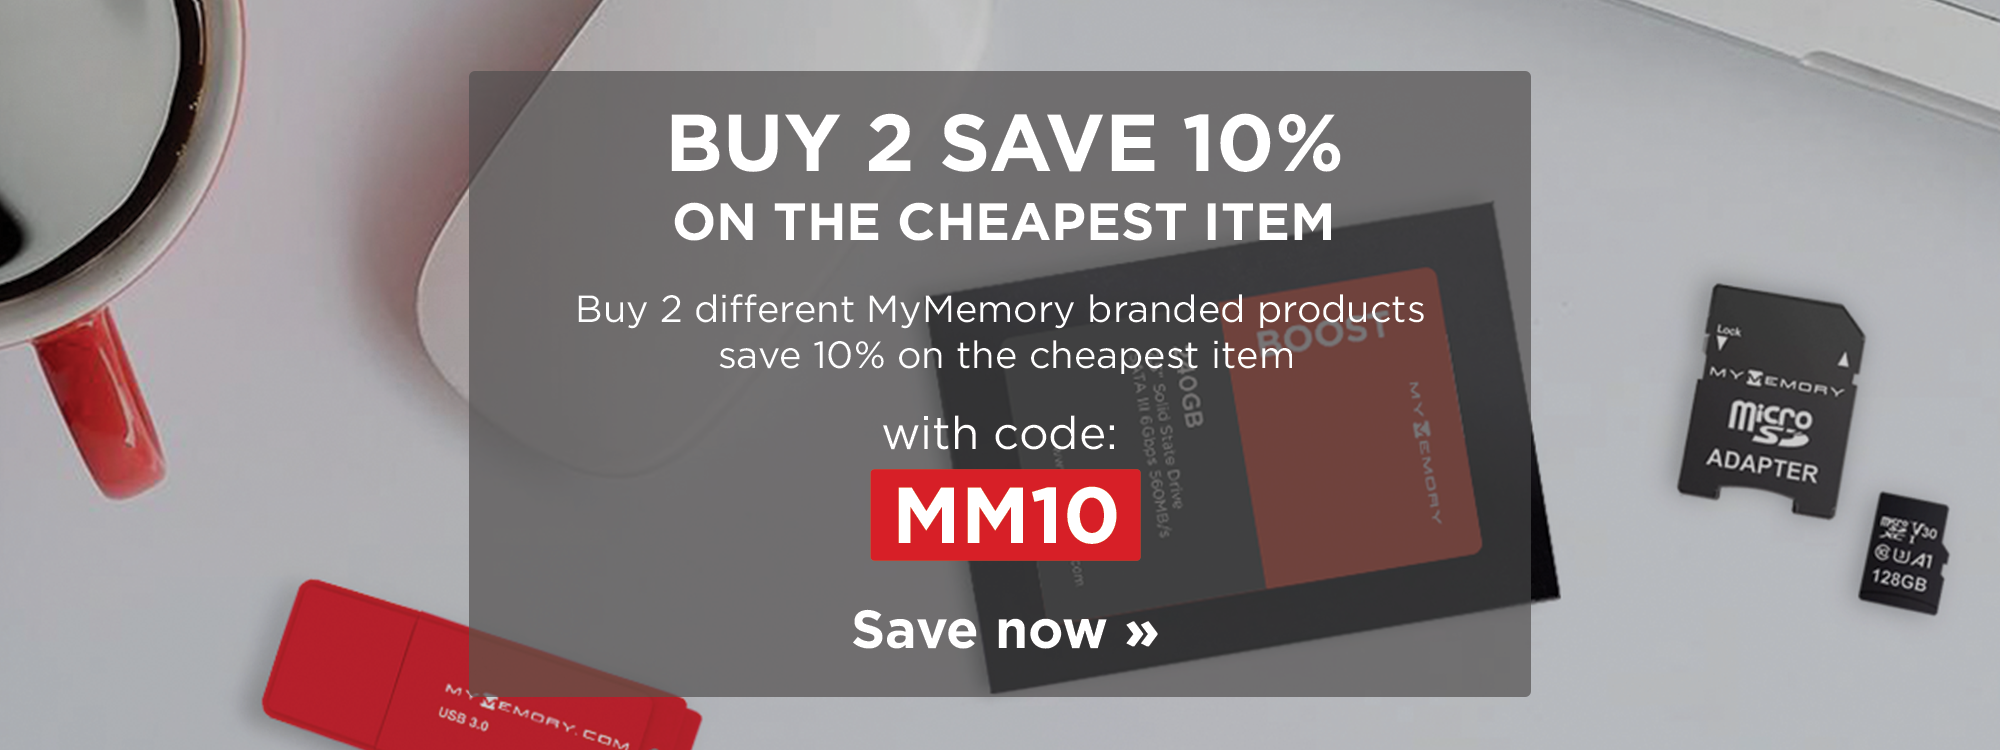 Buy 2 different MyMemory branded products save 10% on cheapest item